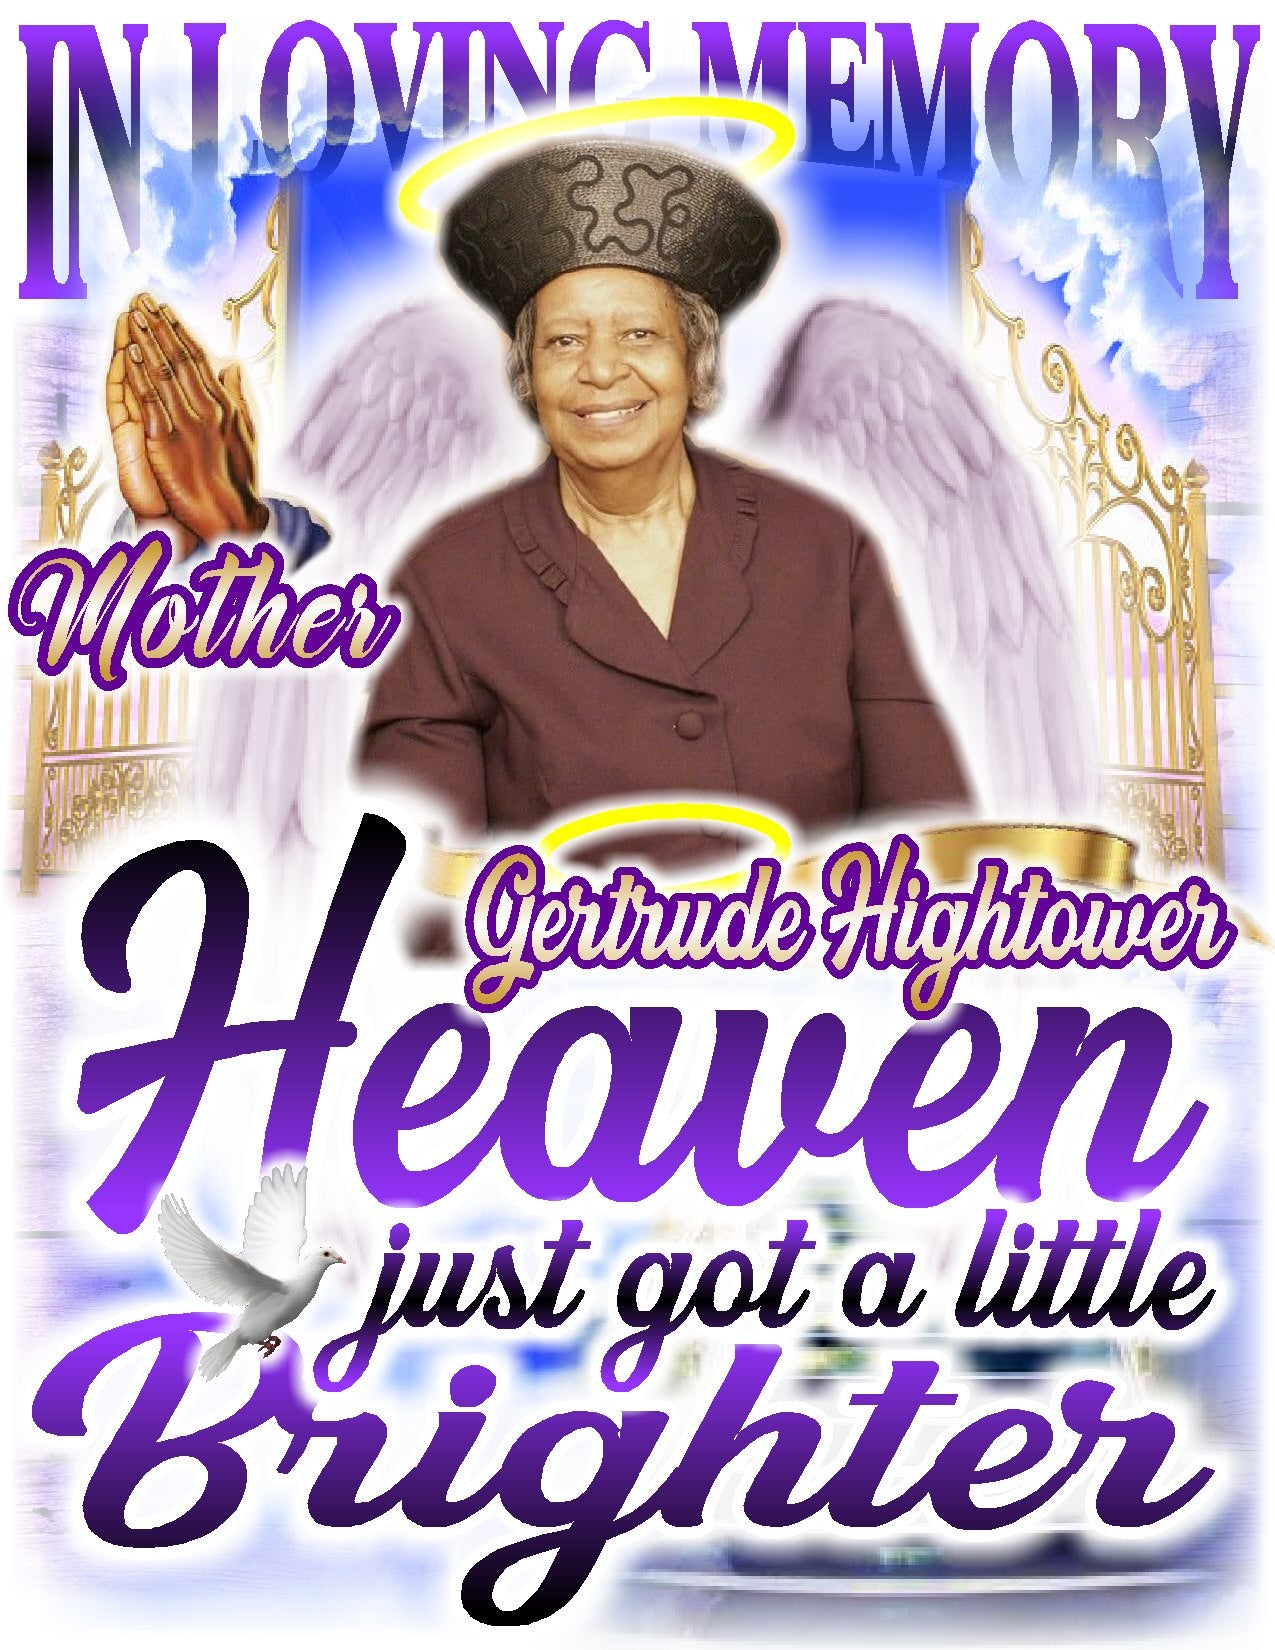 Heaven Just Got A Little Brighter - Loving Memory Store